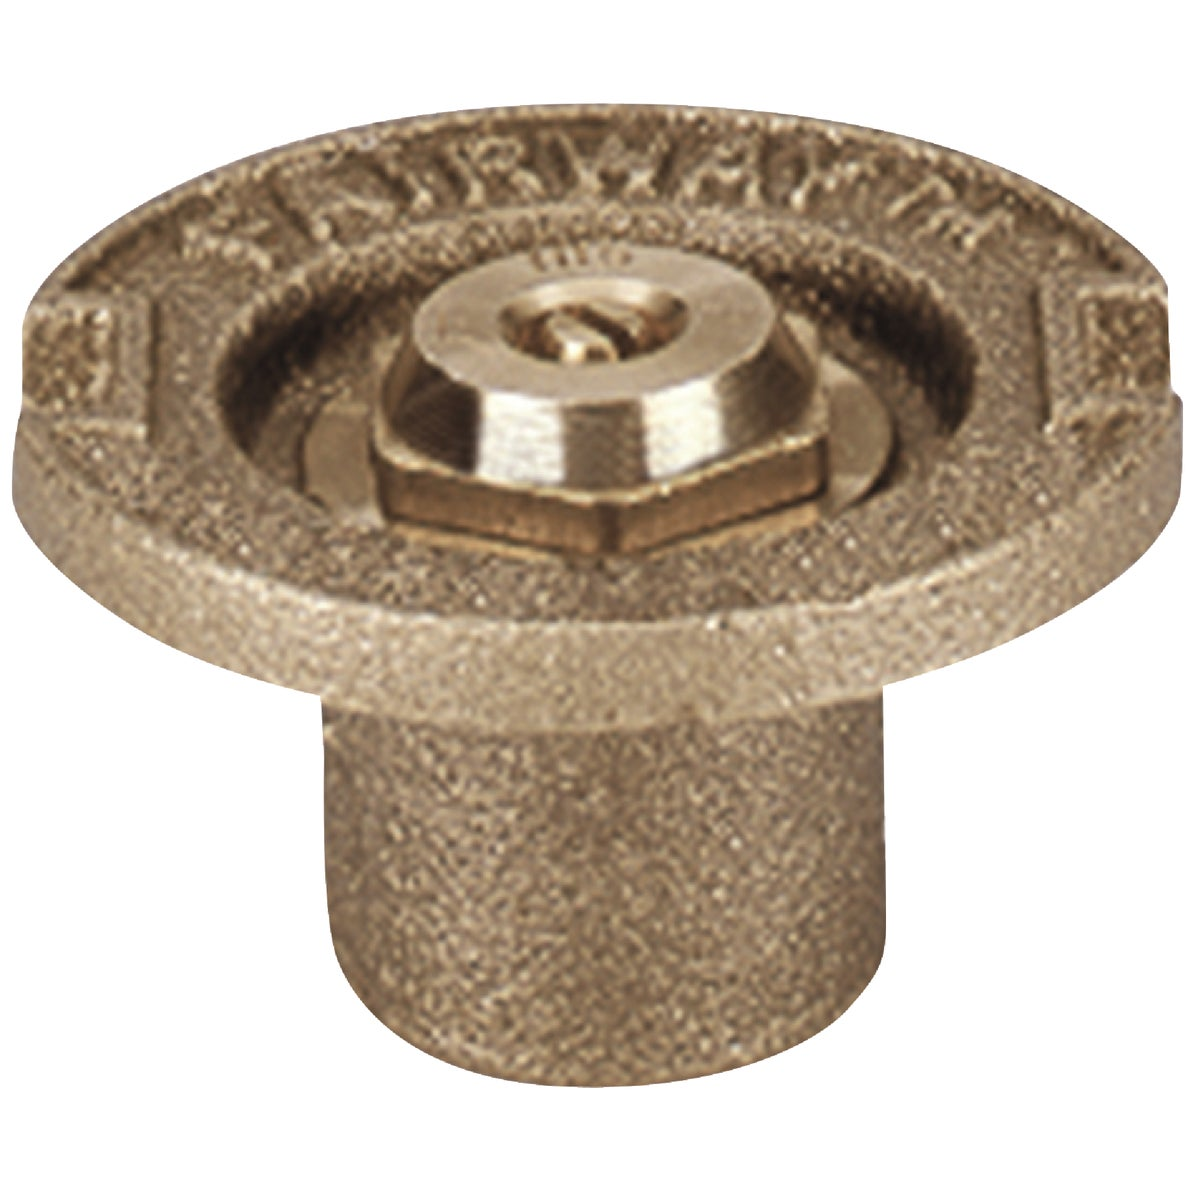 HF BRASS FLUSH SPRINKLER - 17SH/11002 by Champion Arrowhead